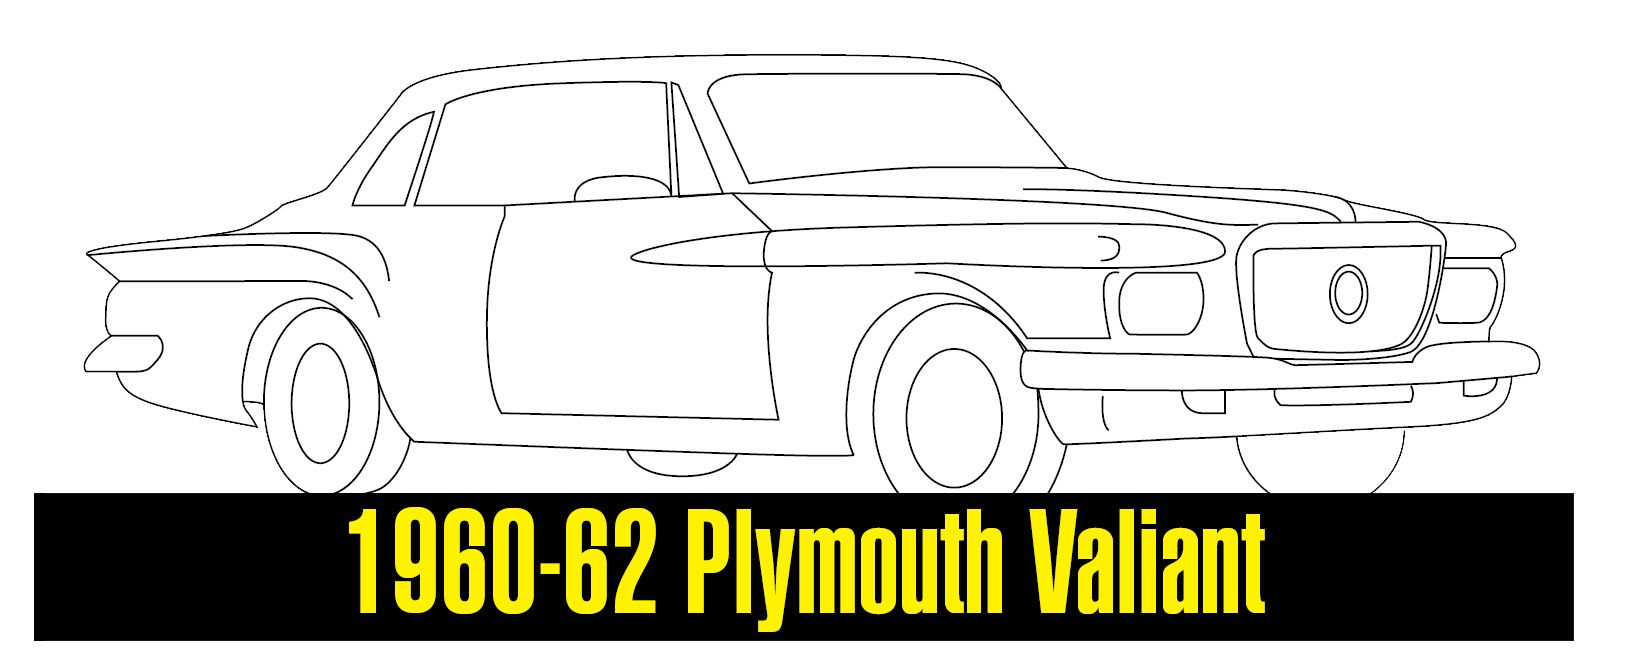 Classic_Plymouth_60_Valiant